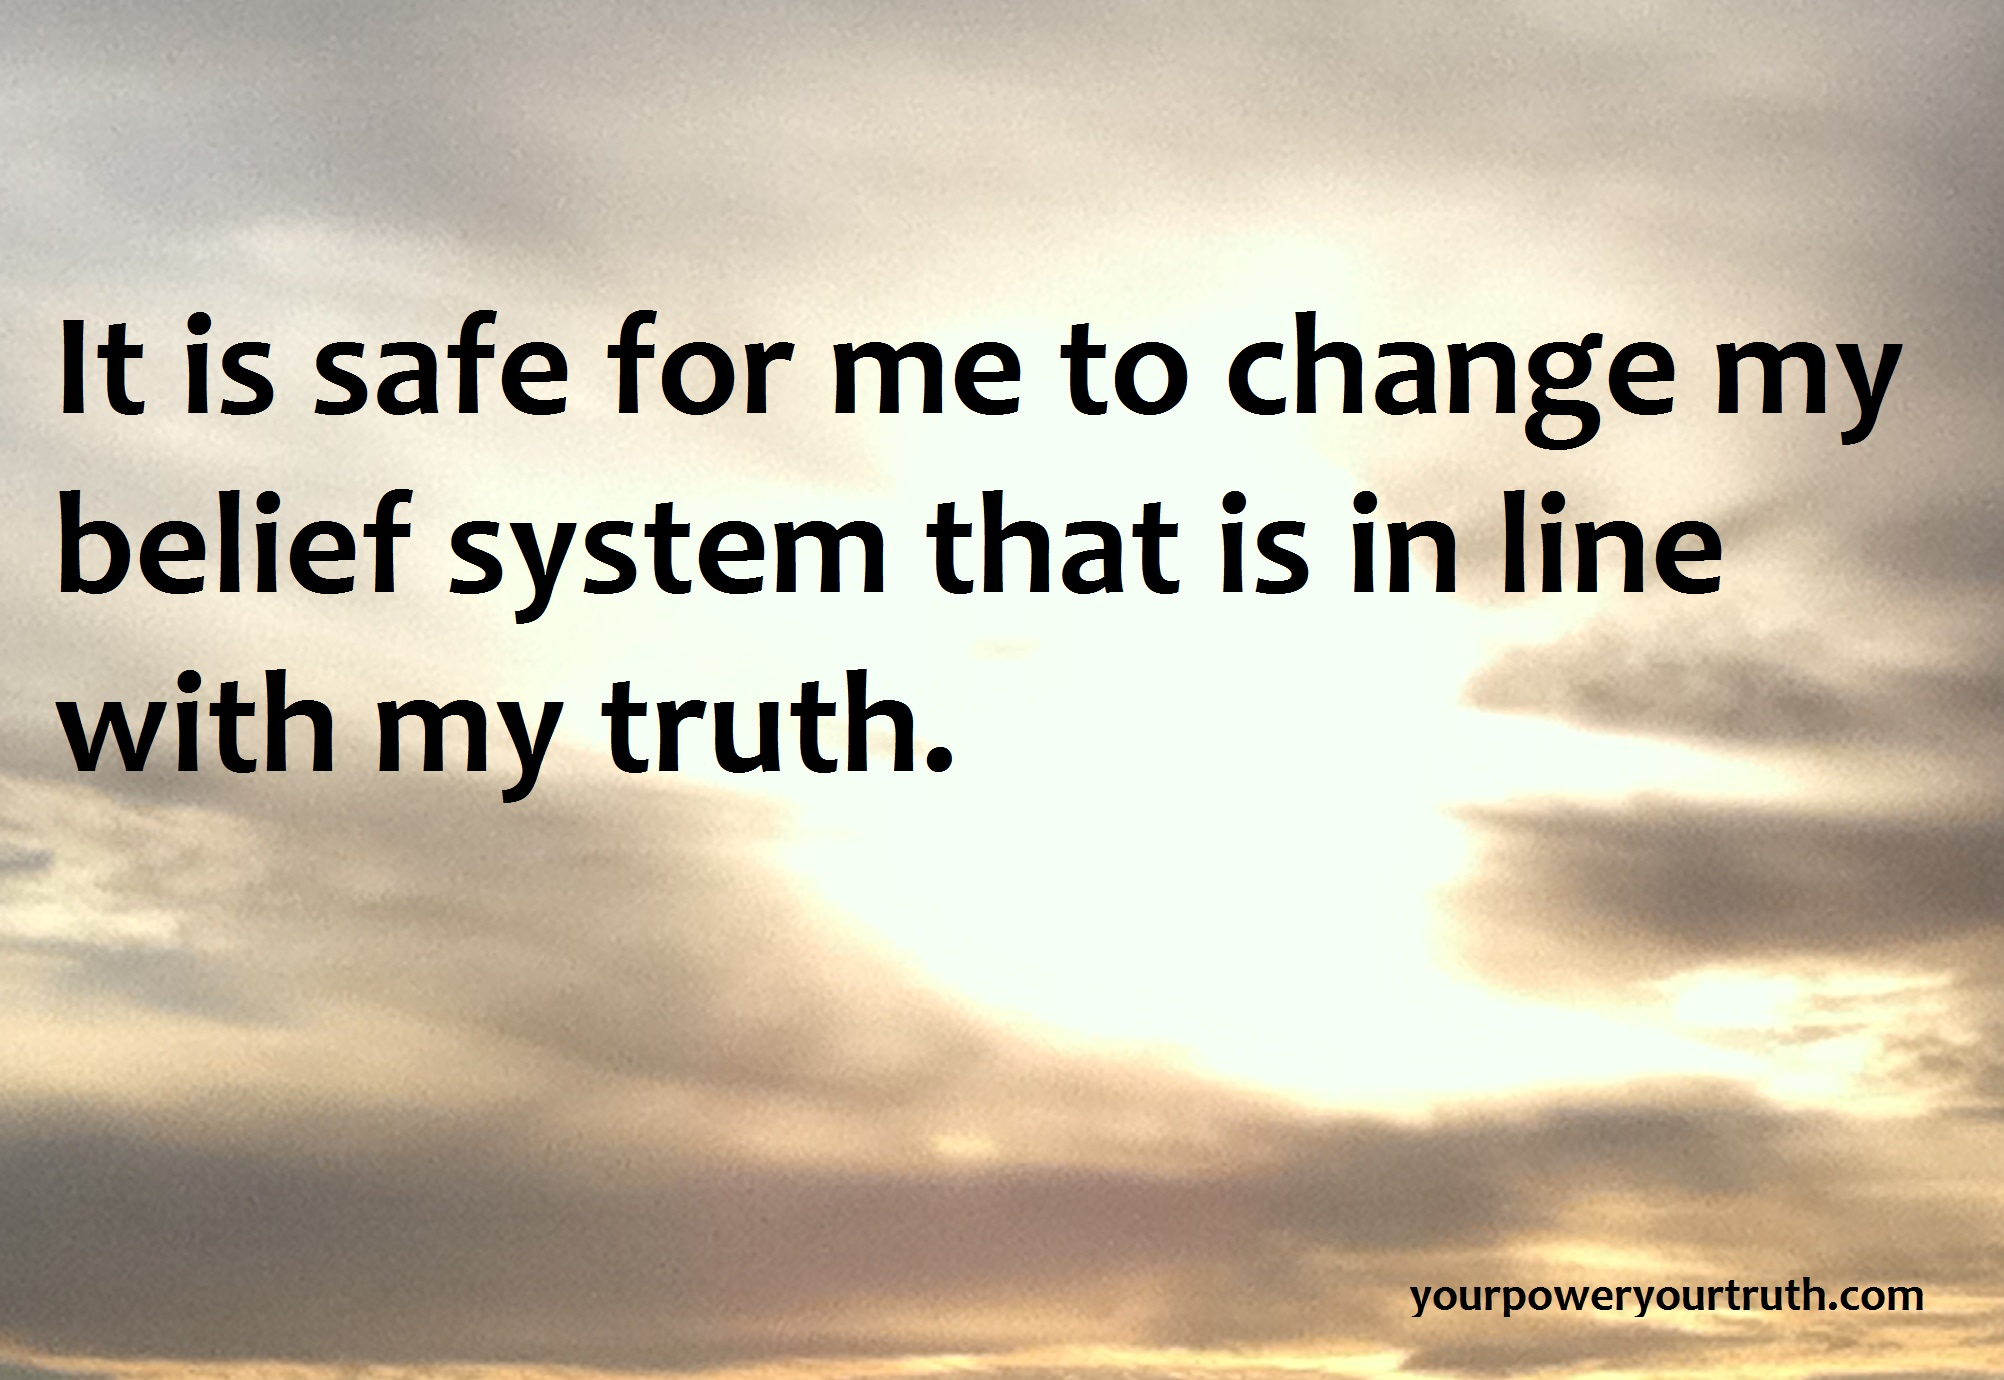 It is safe for me to change my belief system that is inline with my truth.